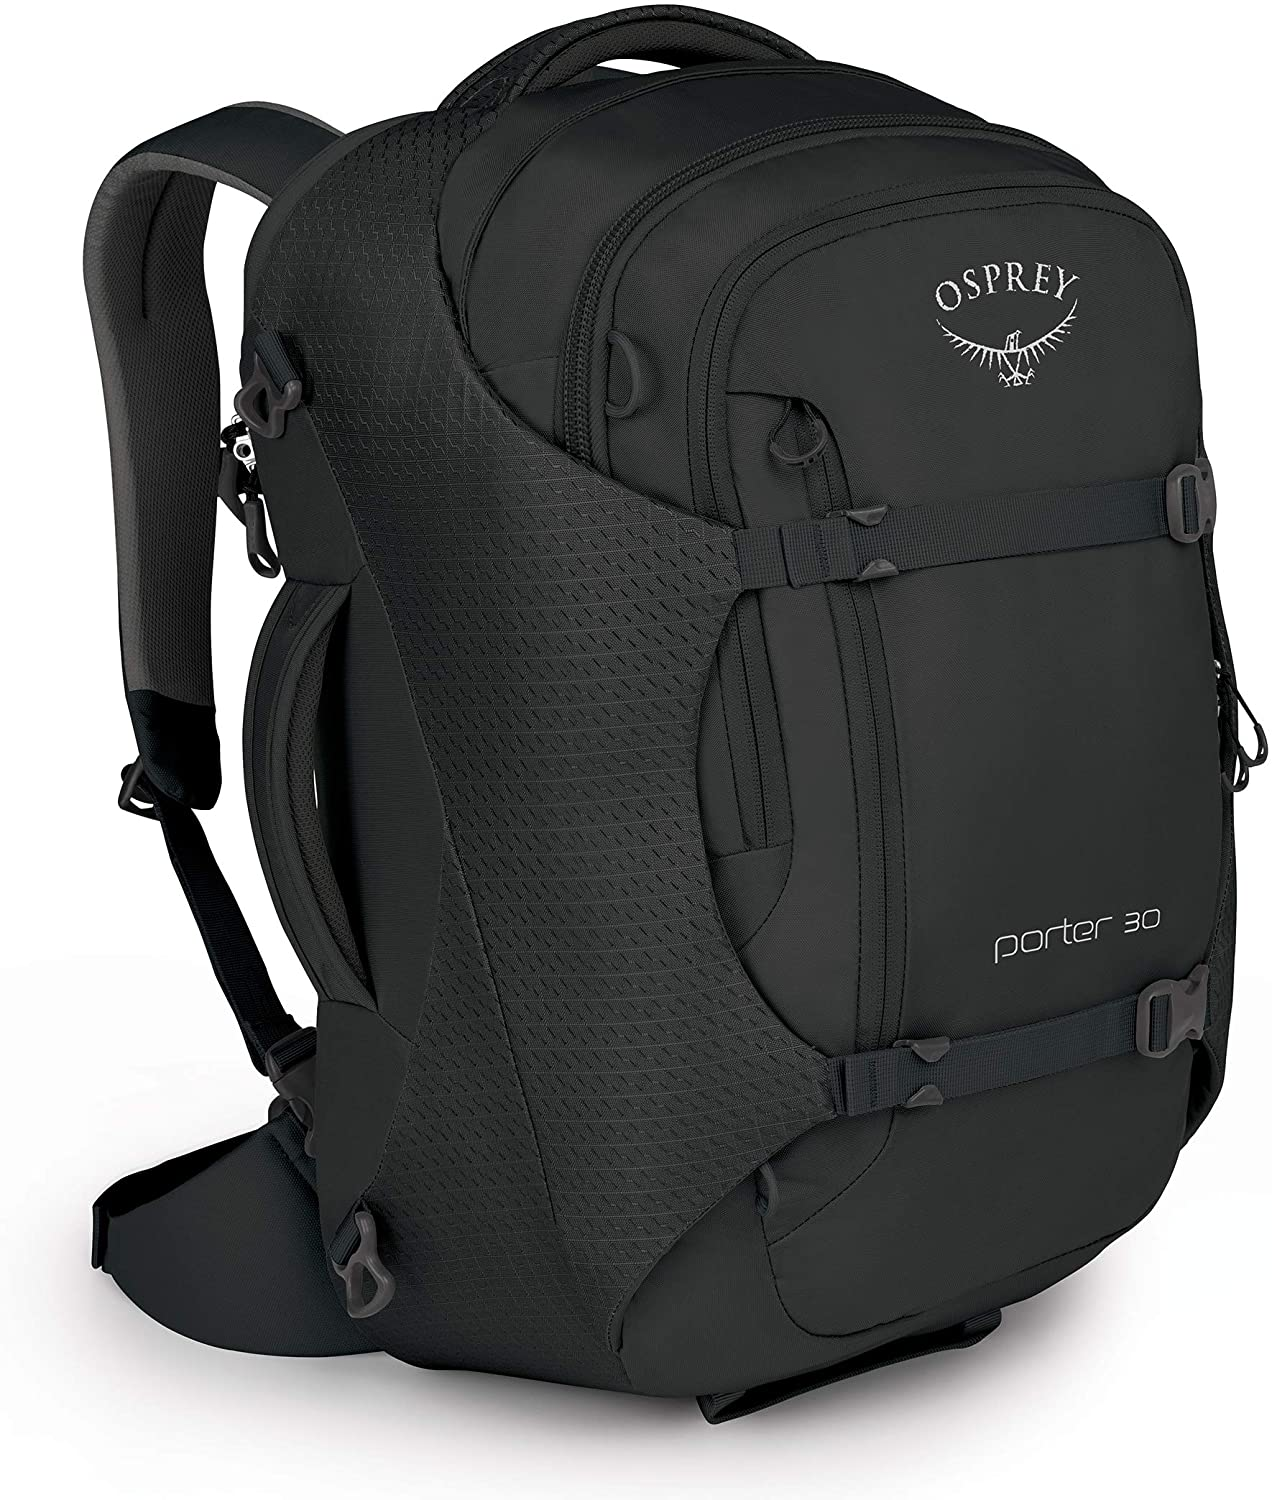 Osprey Travel Backpacks: Porter 46 $84 or Porter 30 Backpack